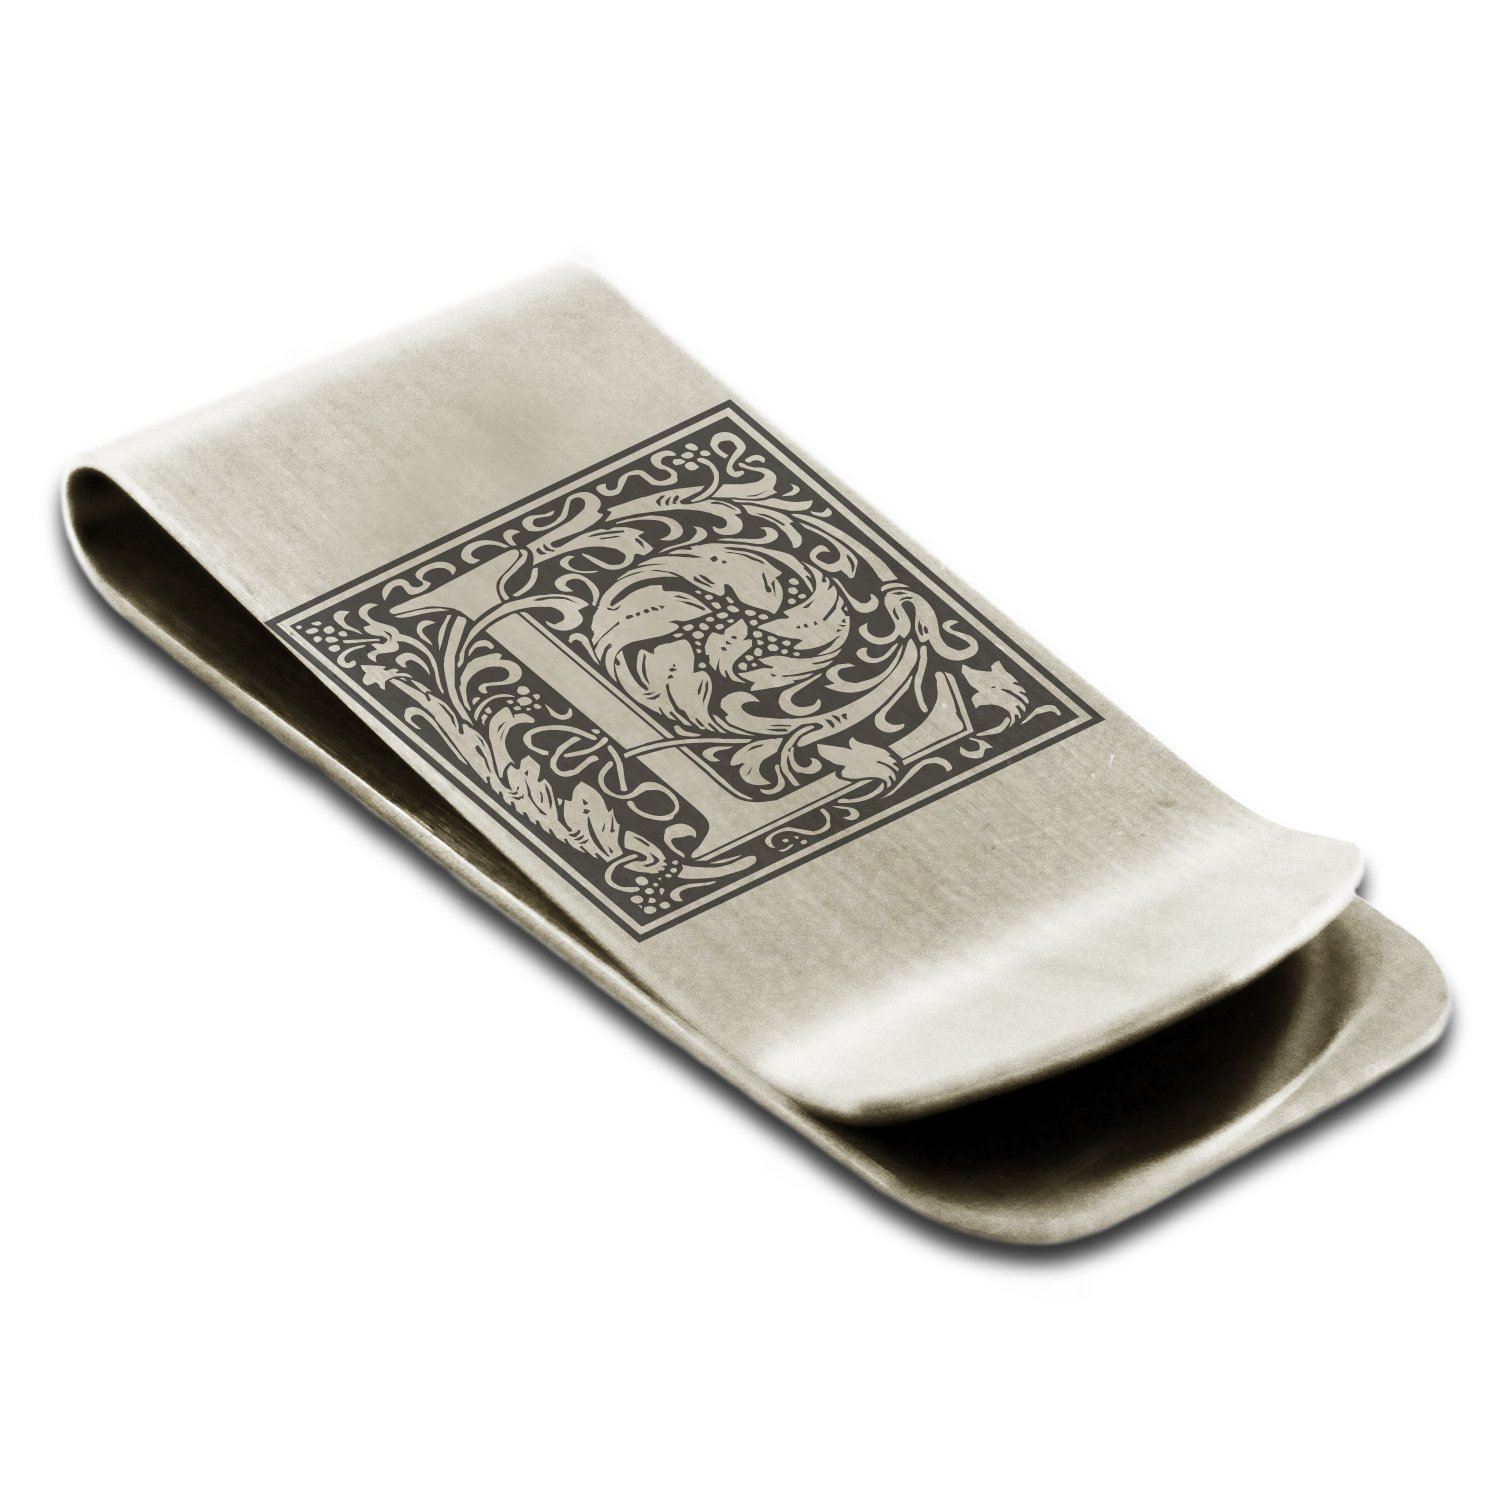 Stainless Steel Letter L Initial Floral Box Monogram Engraved Money Clip Credit Card Holder